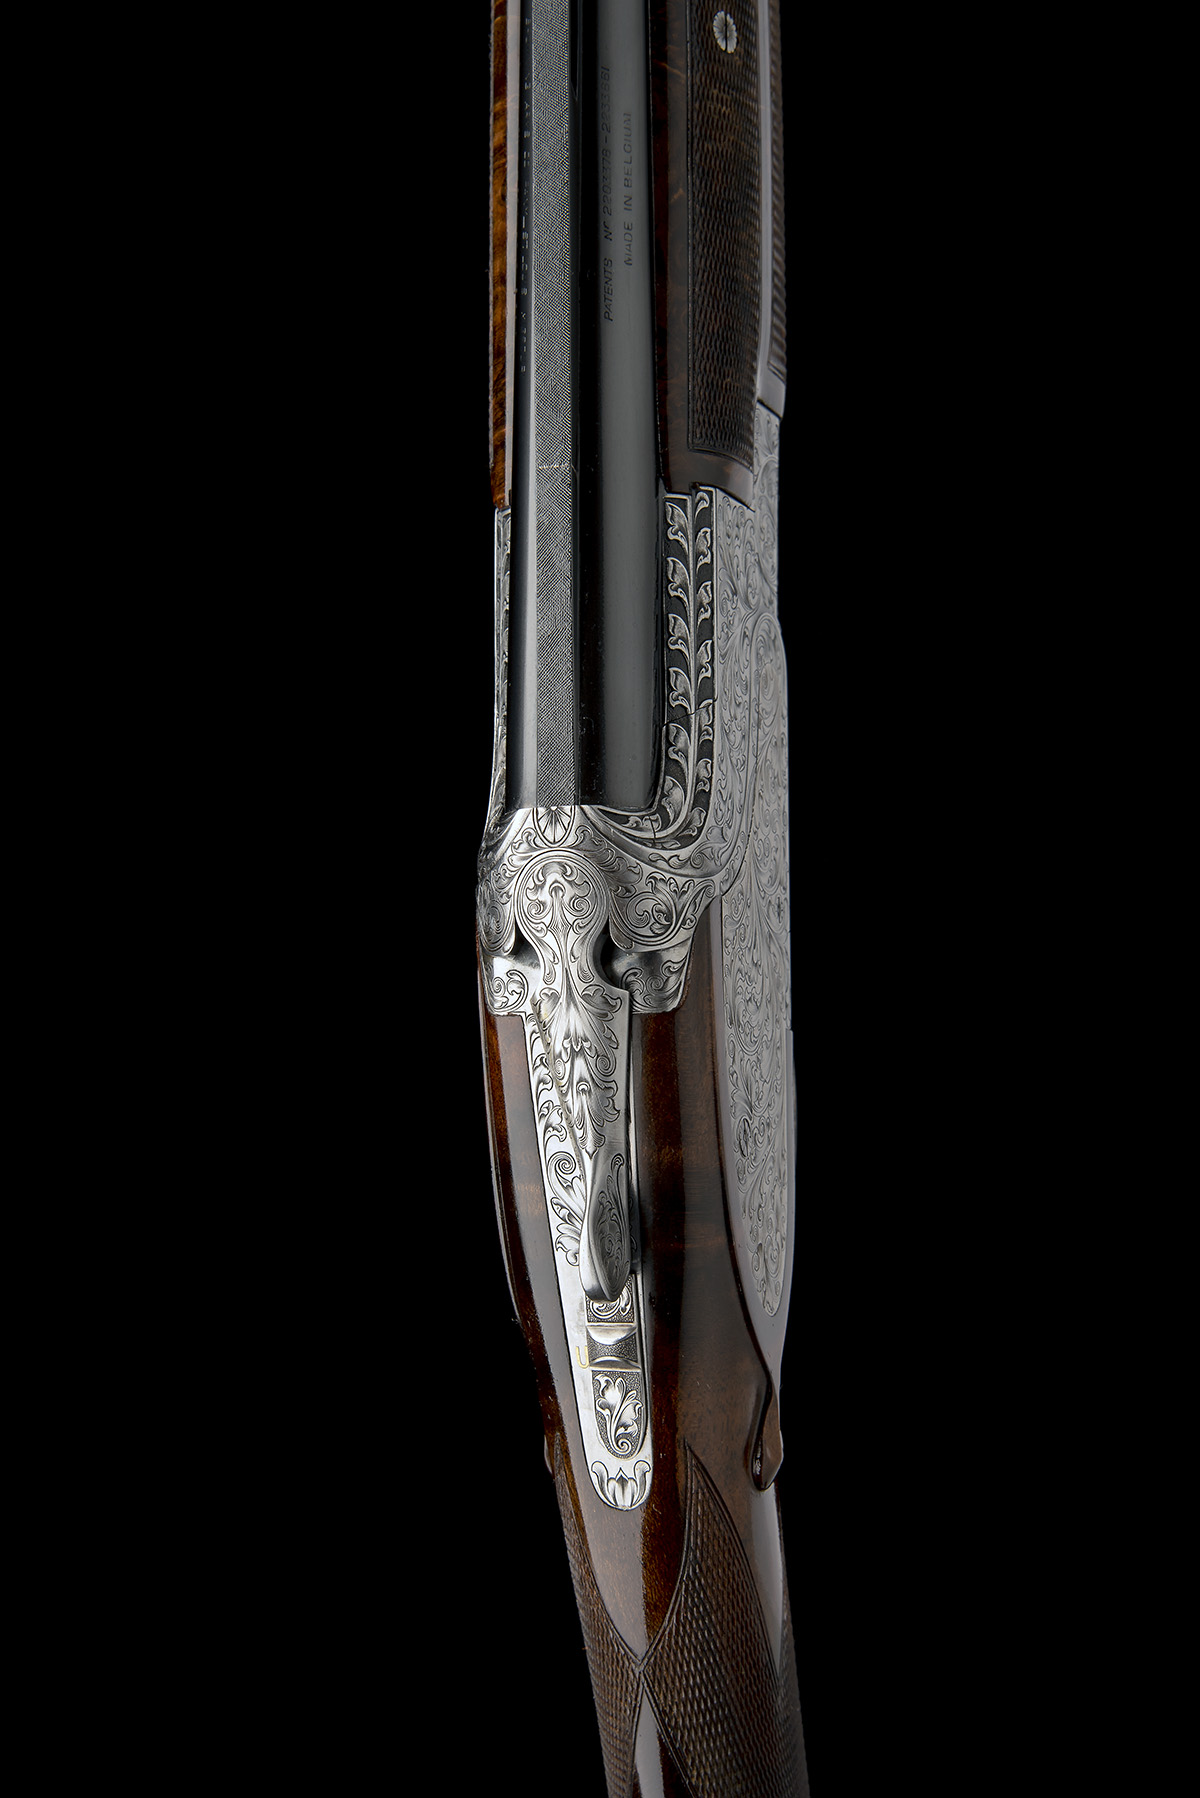 BROWNING ARMS CO. A CUSTOM JACOBY-ENGRAVED 20-BORE SIDEPLATED 'B25' SINGLE-TRIGGER OVER AND UNDER - Image 7 of 11